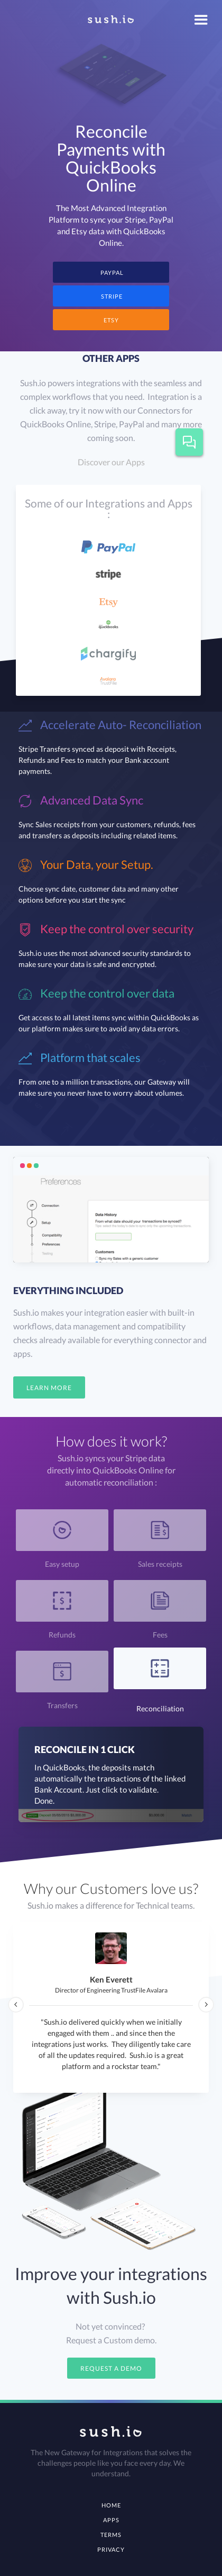 Example of Design for Finance, Accounting & Auditing, Mobile Landing Page by sush.io | Mobile Landing Page Design